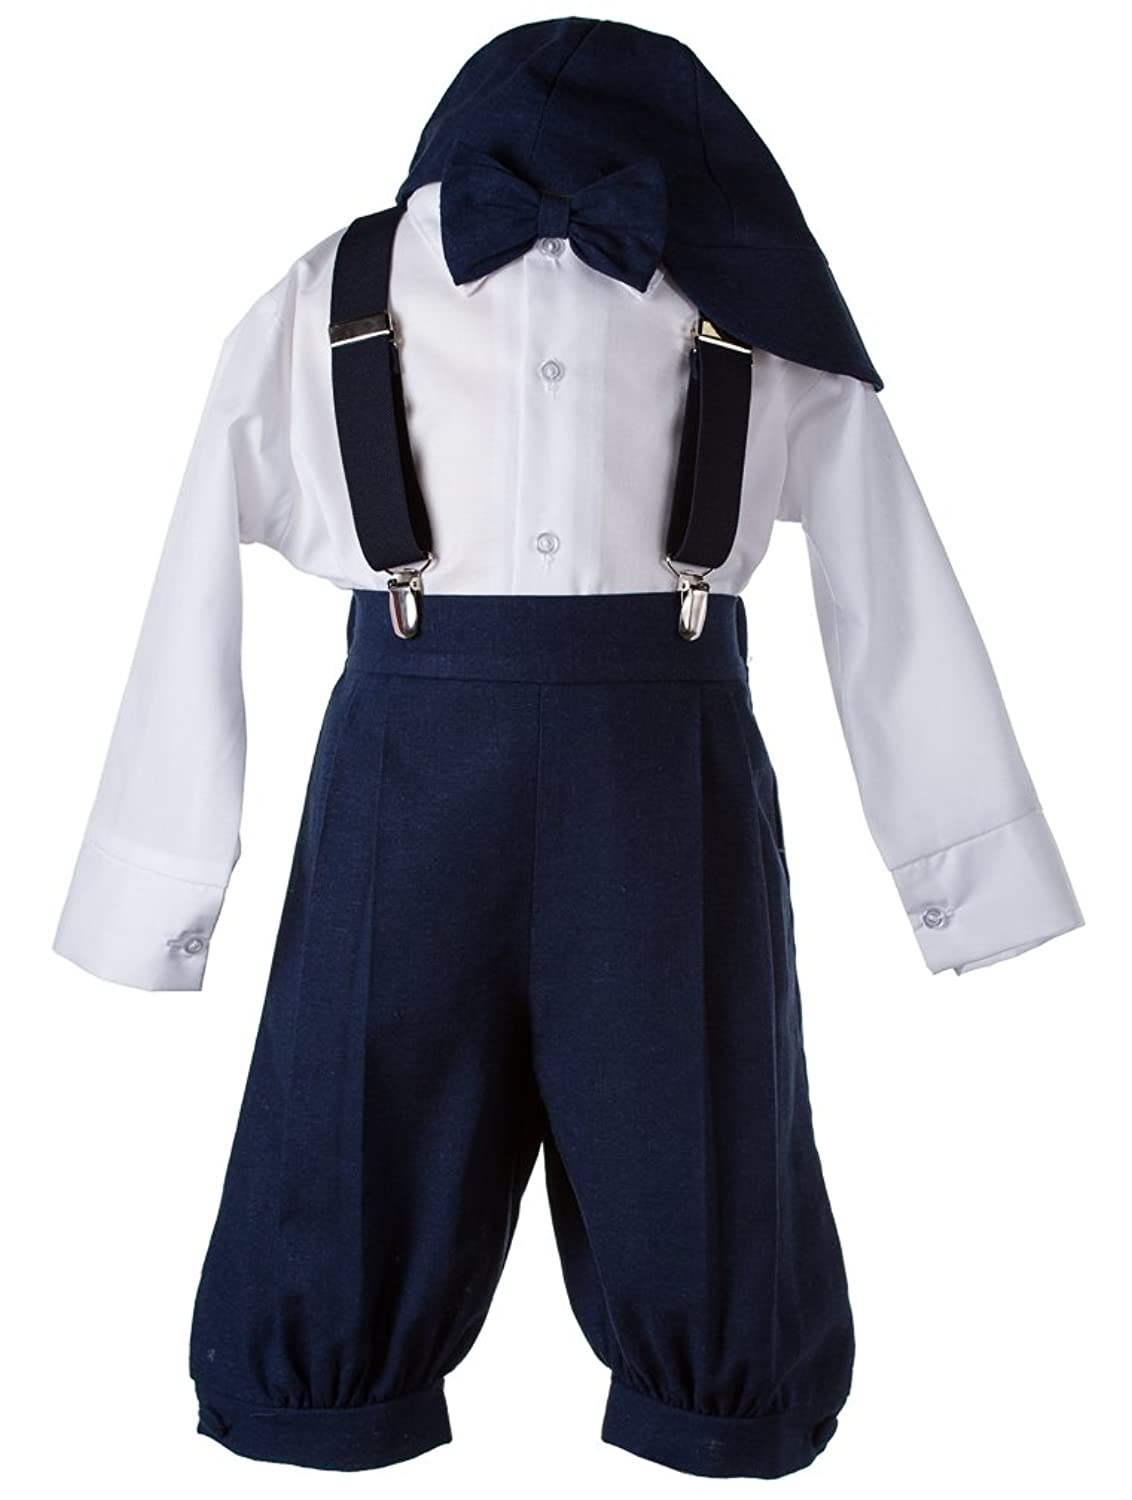 1930s Childrens Fashion: Girls, Boys, Toddler, Baby Costumes Boys Navy Linen Knicker 5 Piece Outfit $32.95 AT vintagedancer.com